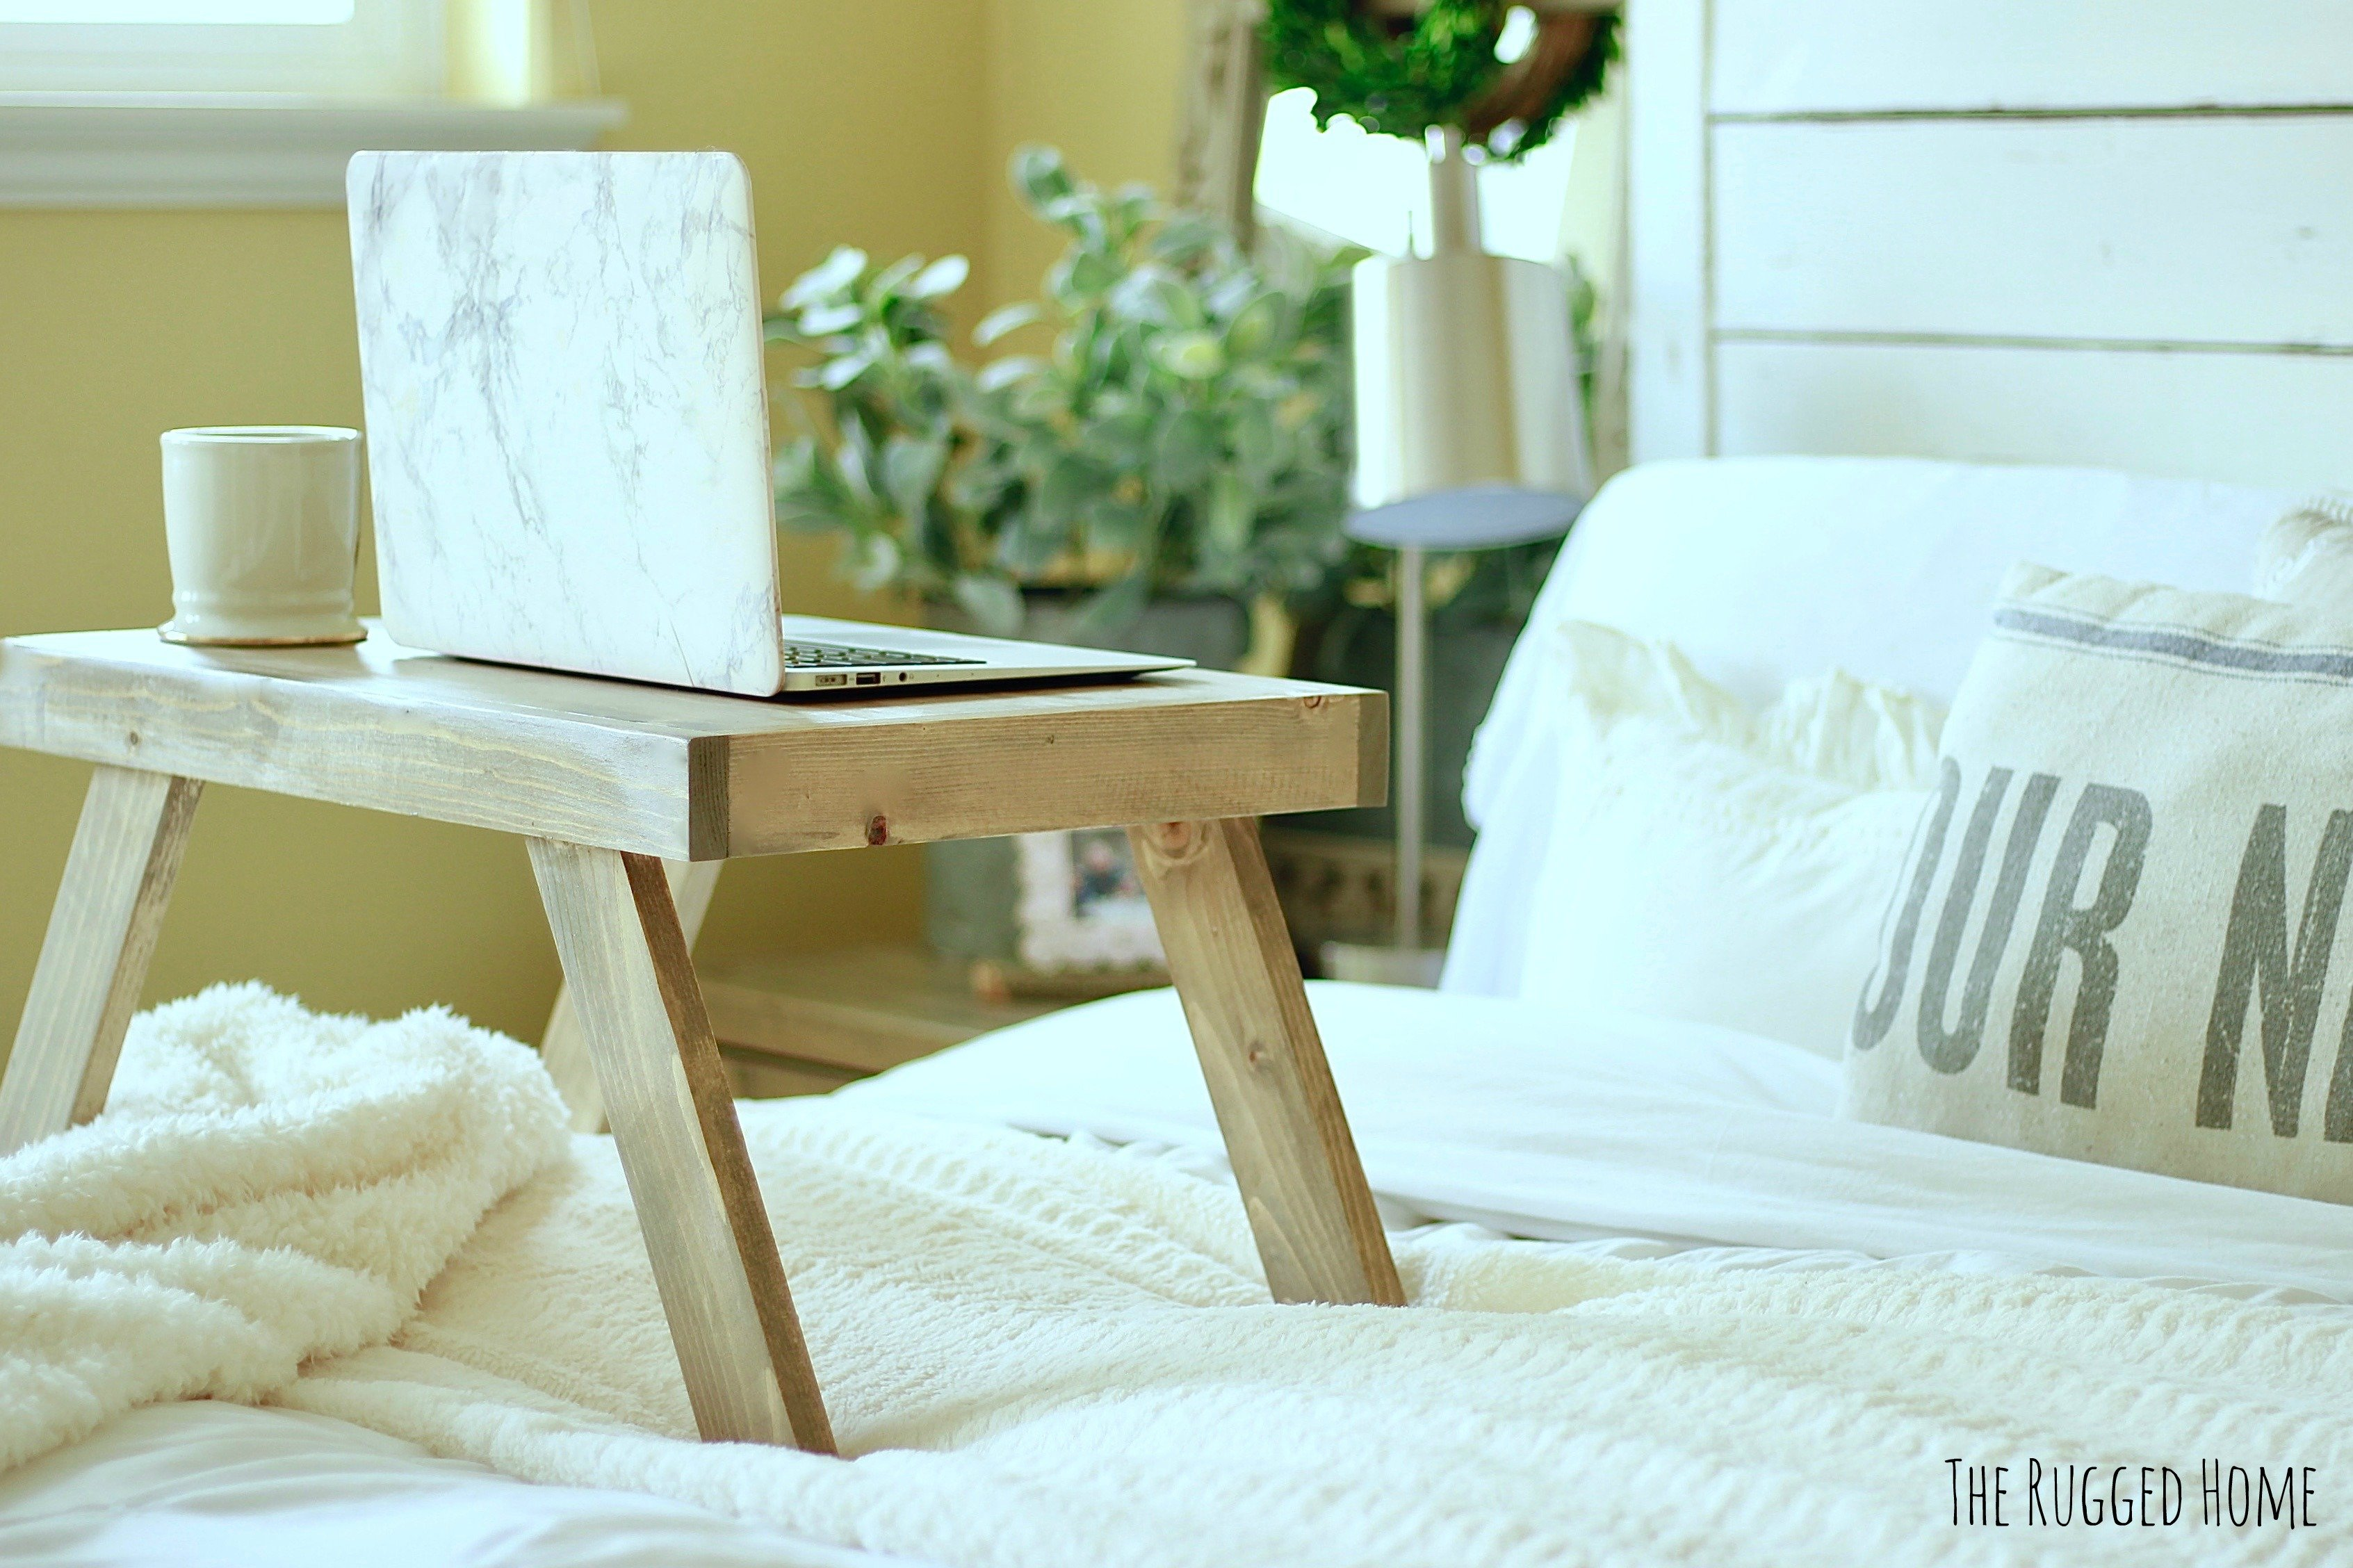 How to make a DIY Super Easy Bed Tray For Working, Sipping Tea or lounging in bed. Breakfast Tray, Bed Tray, Bed Desk www.whitepicketfarmhouse.com